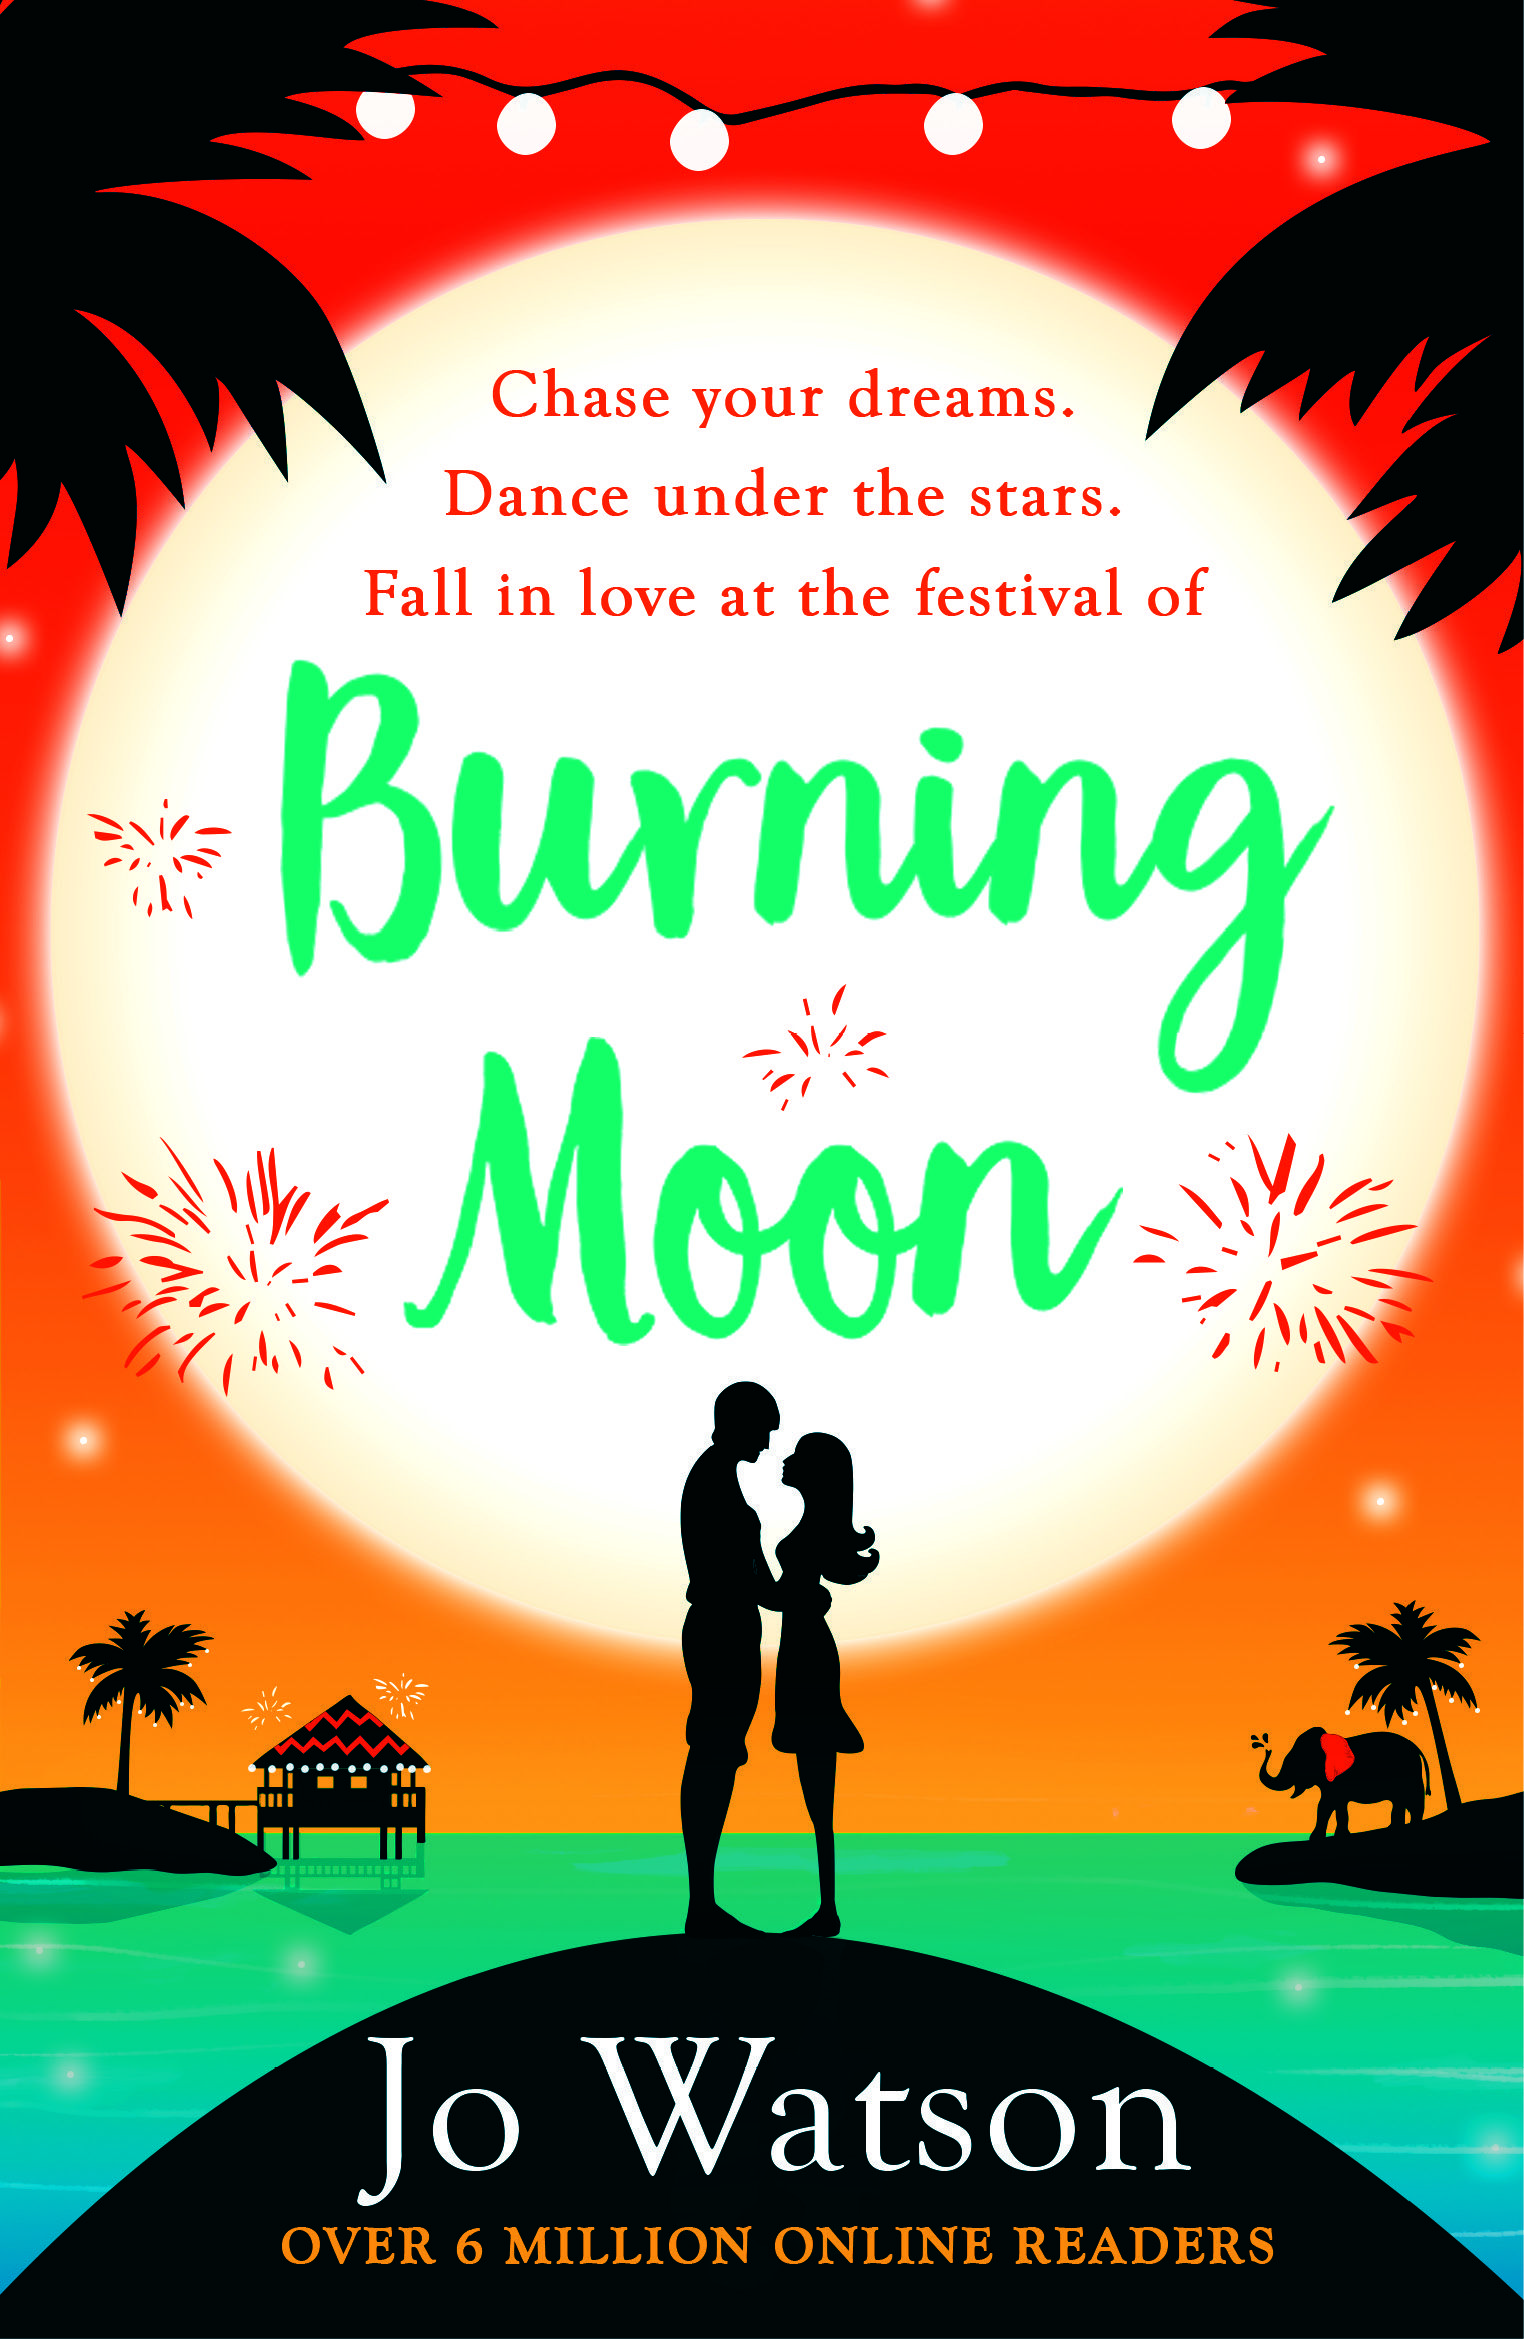 Burning moon uk version only by jo watson laugh out loud romcom ebook deals on burning moon uk version only by jo watson free and discounted ebook deals for burning moon uk version only and other great books fandeluxe Gallery